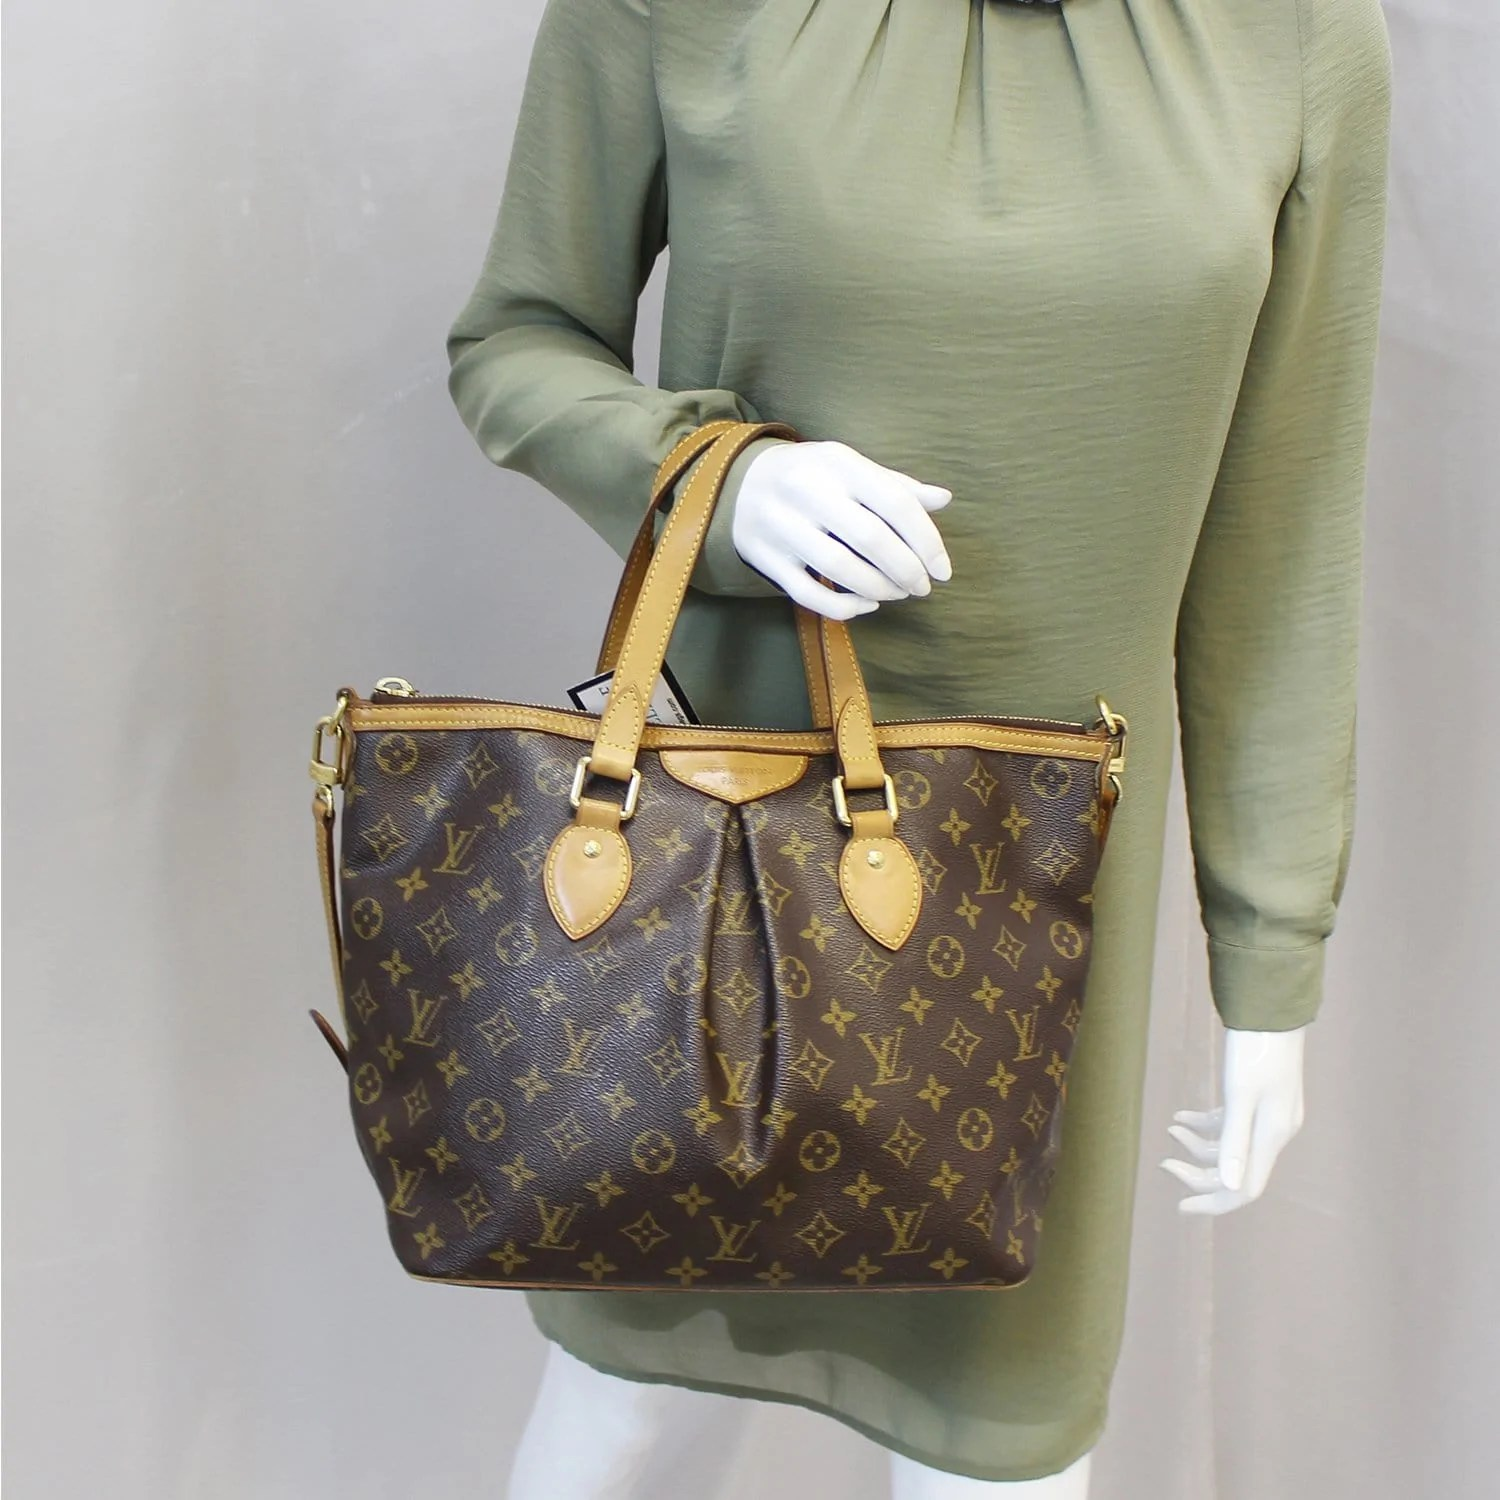 Louis Vuitton Tivoli Vs Palermo Louis Vuitton Monogram Canvas Palermo Pm Brown Shoulder Bag Us